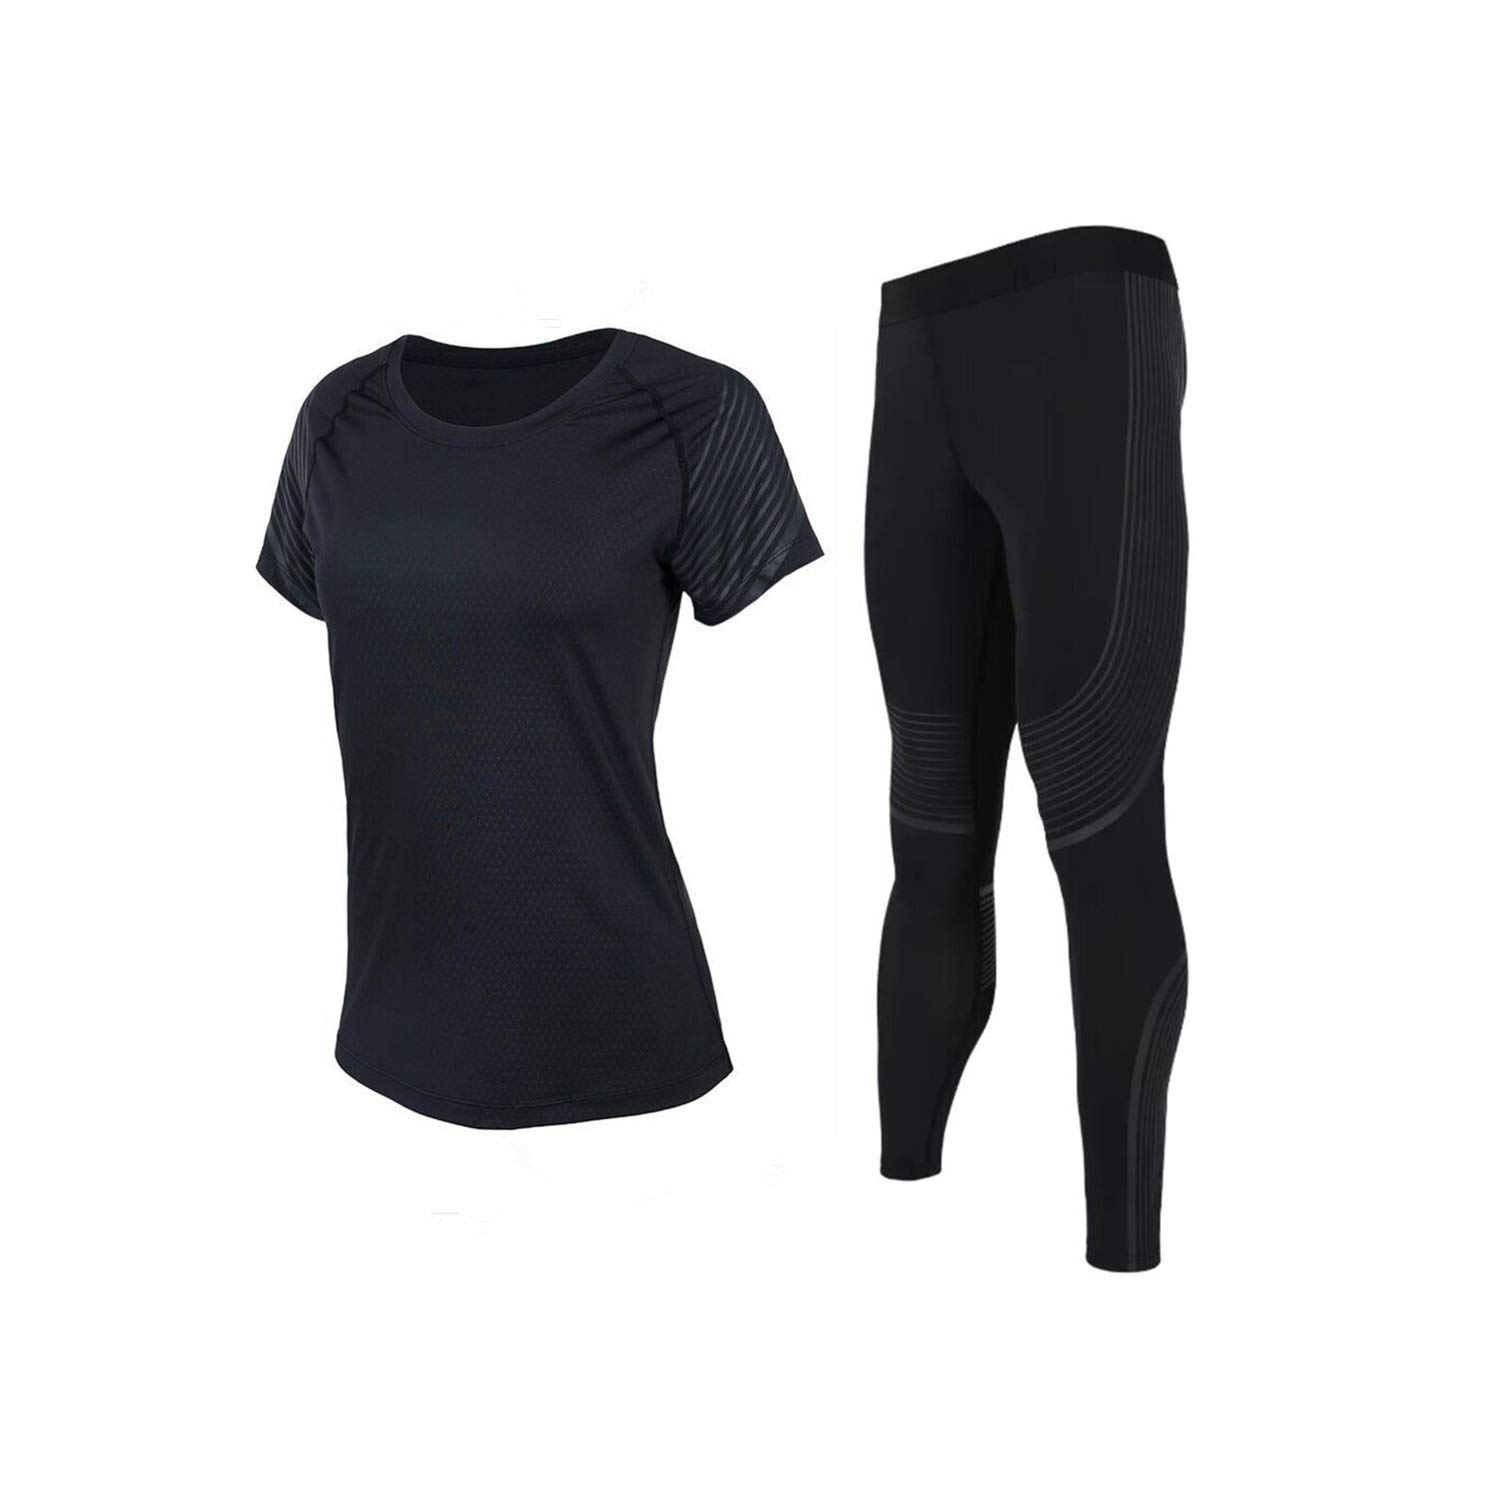 TC023 WBeauty Women's Yoga Clothes Set Running Tights Sportswear Quick Dry